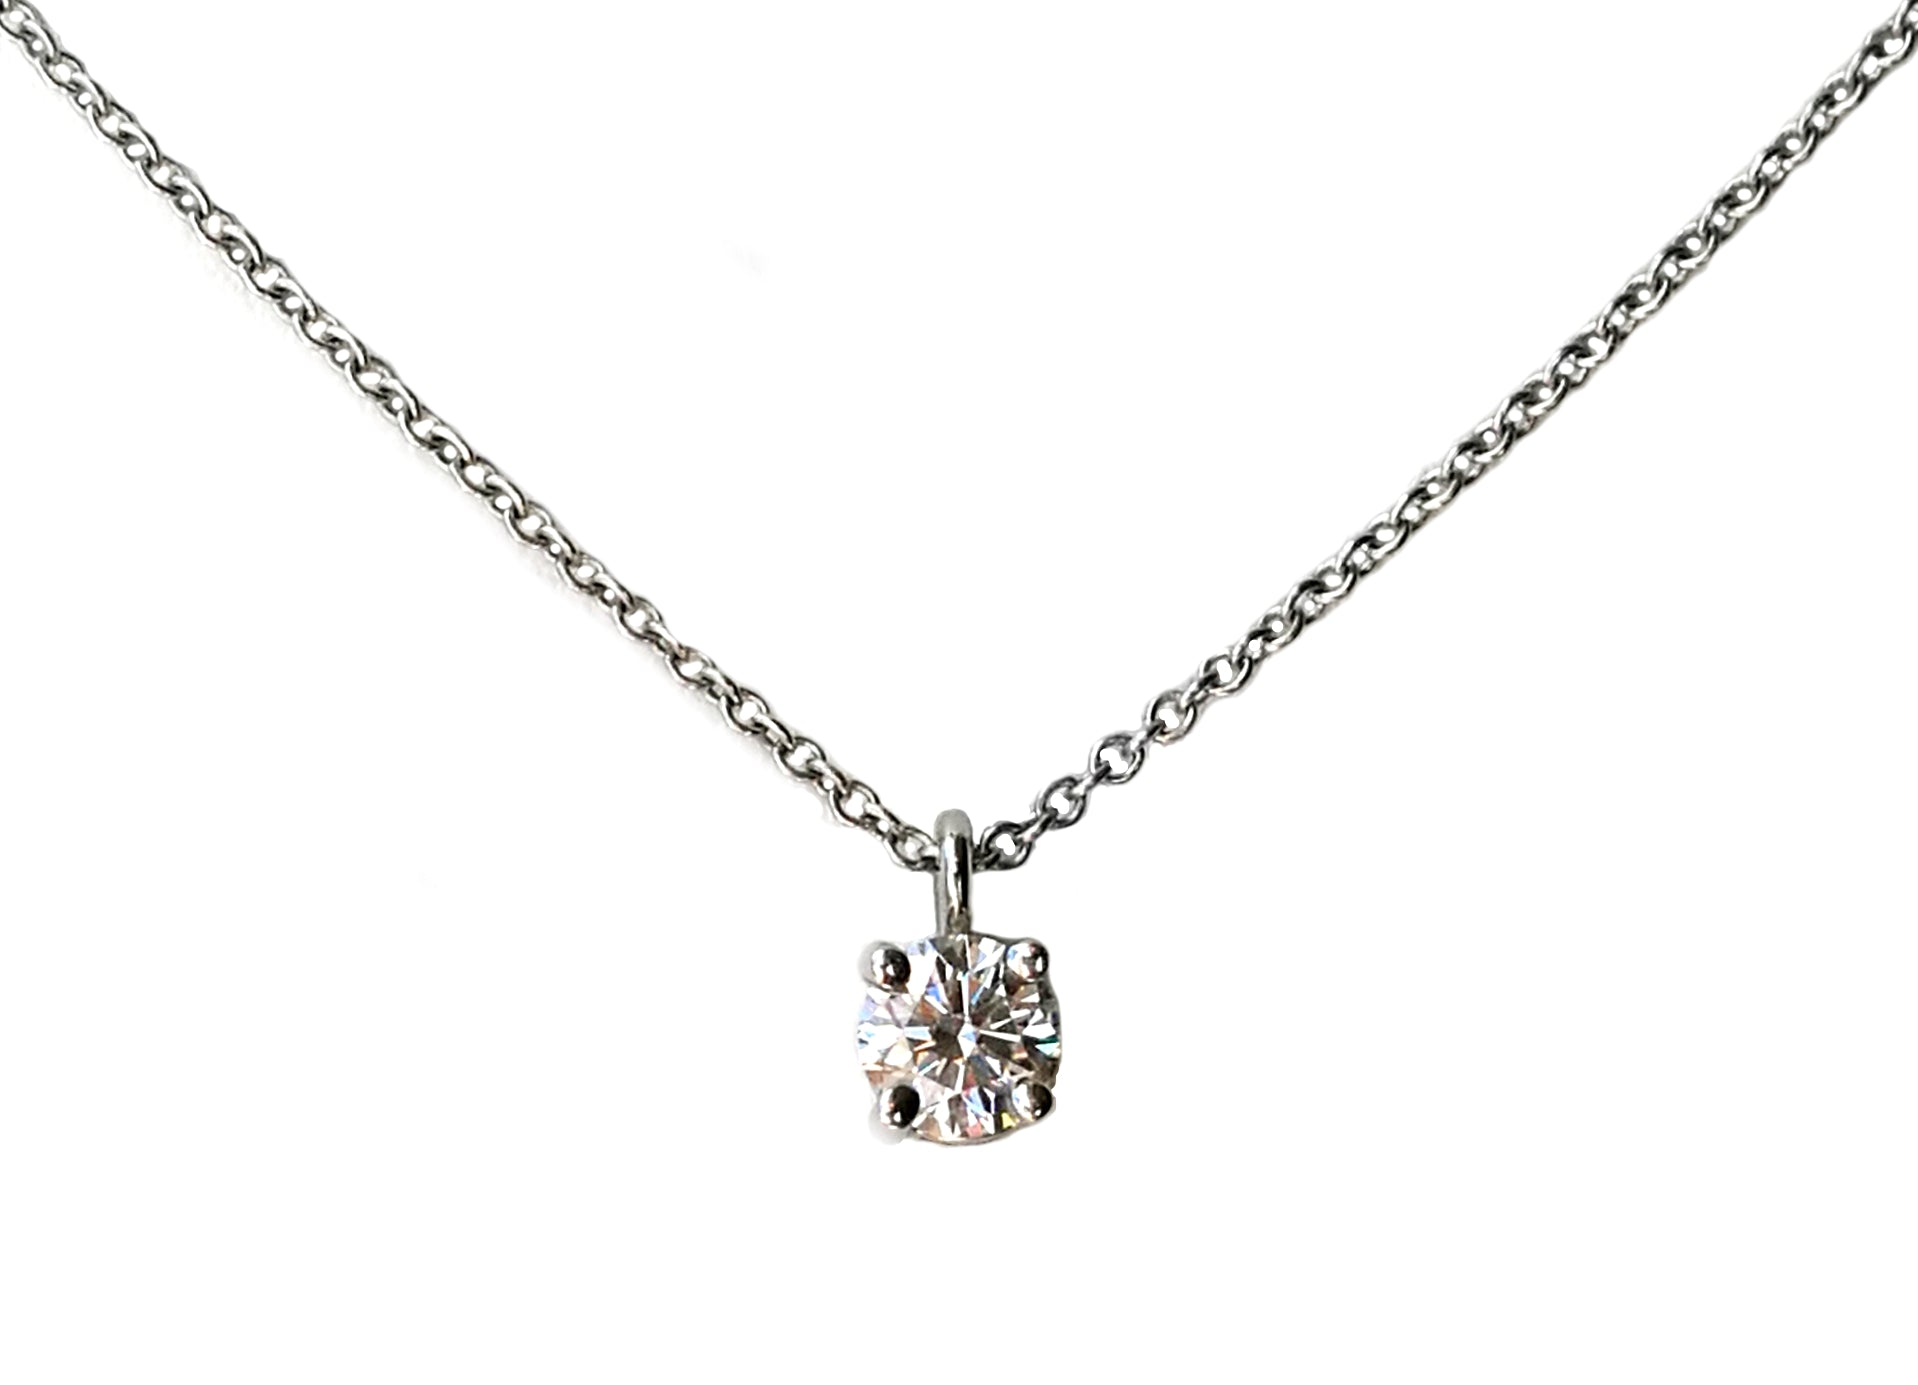 Tiffany co 031ct hvvs1 round brilliant diamond solitaire tiffany co 031ct hvvs1 round brilliant diamond solitaire pendant 16 inch chain aloadofball